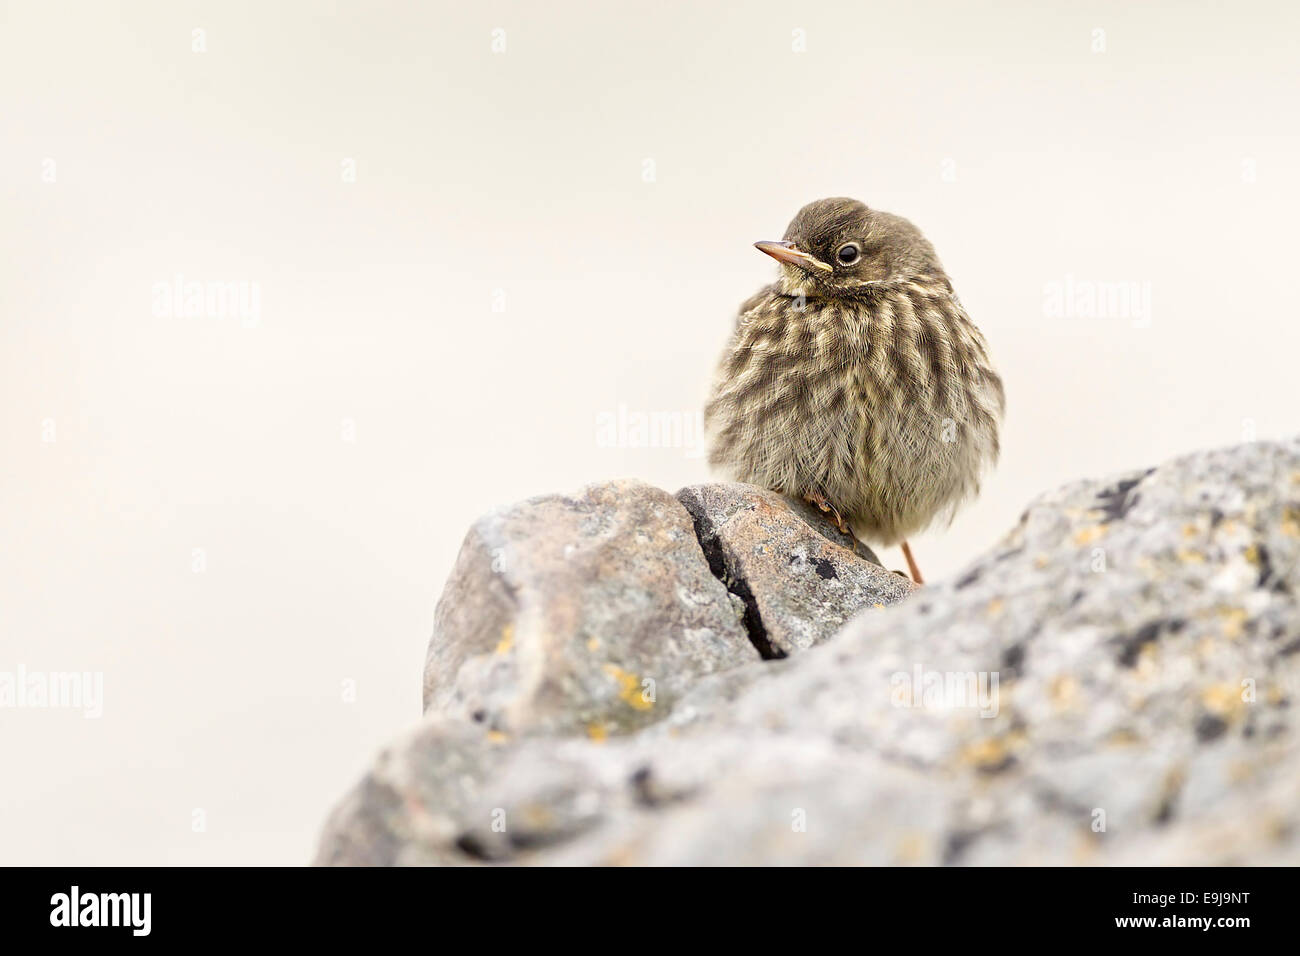 Rock Pipit (Anthus petrosus) - Stock Image